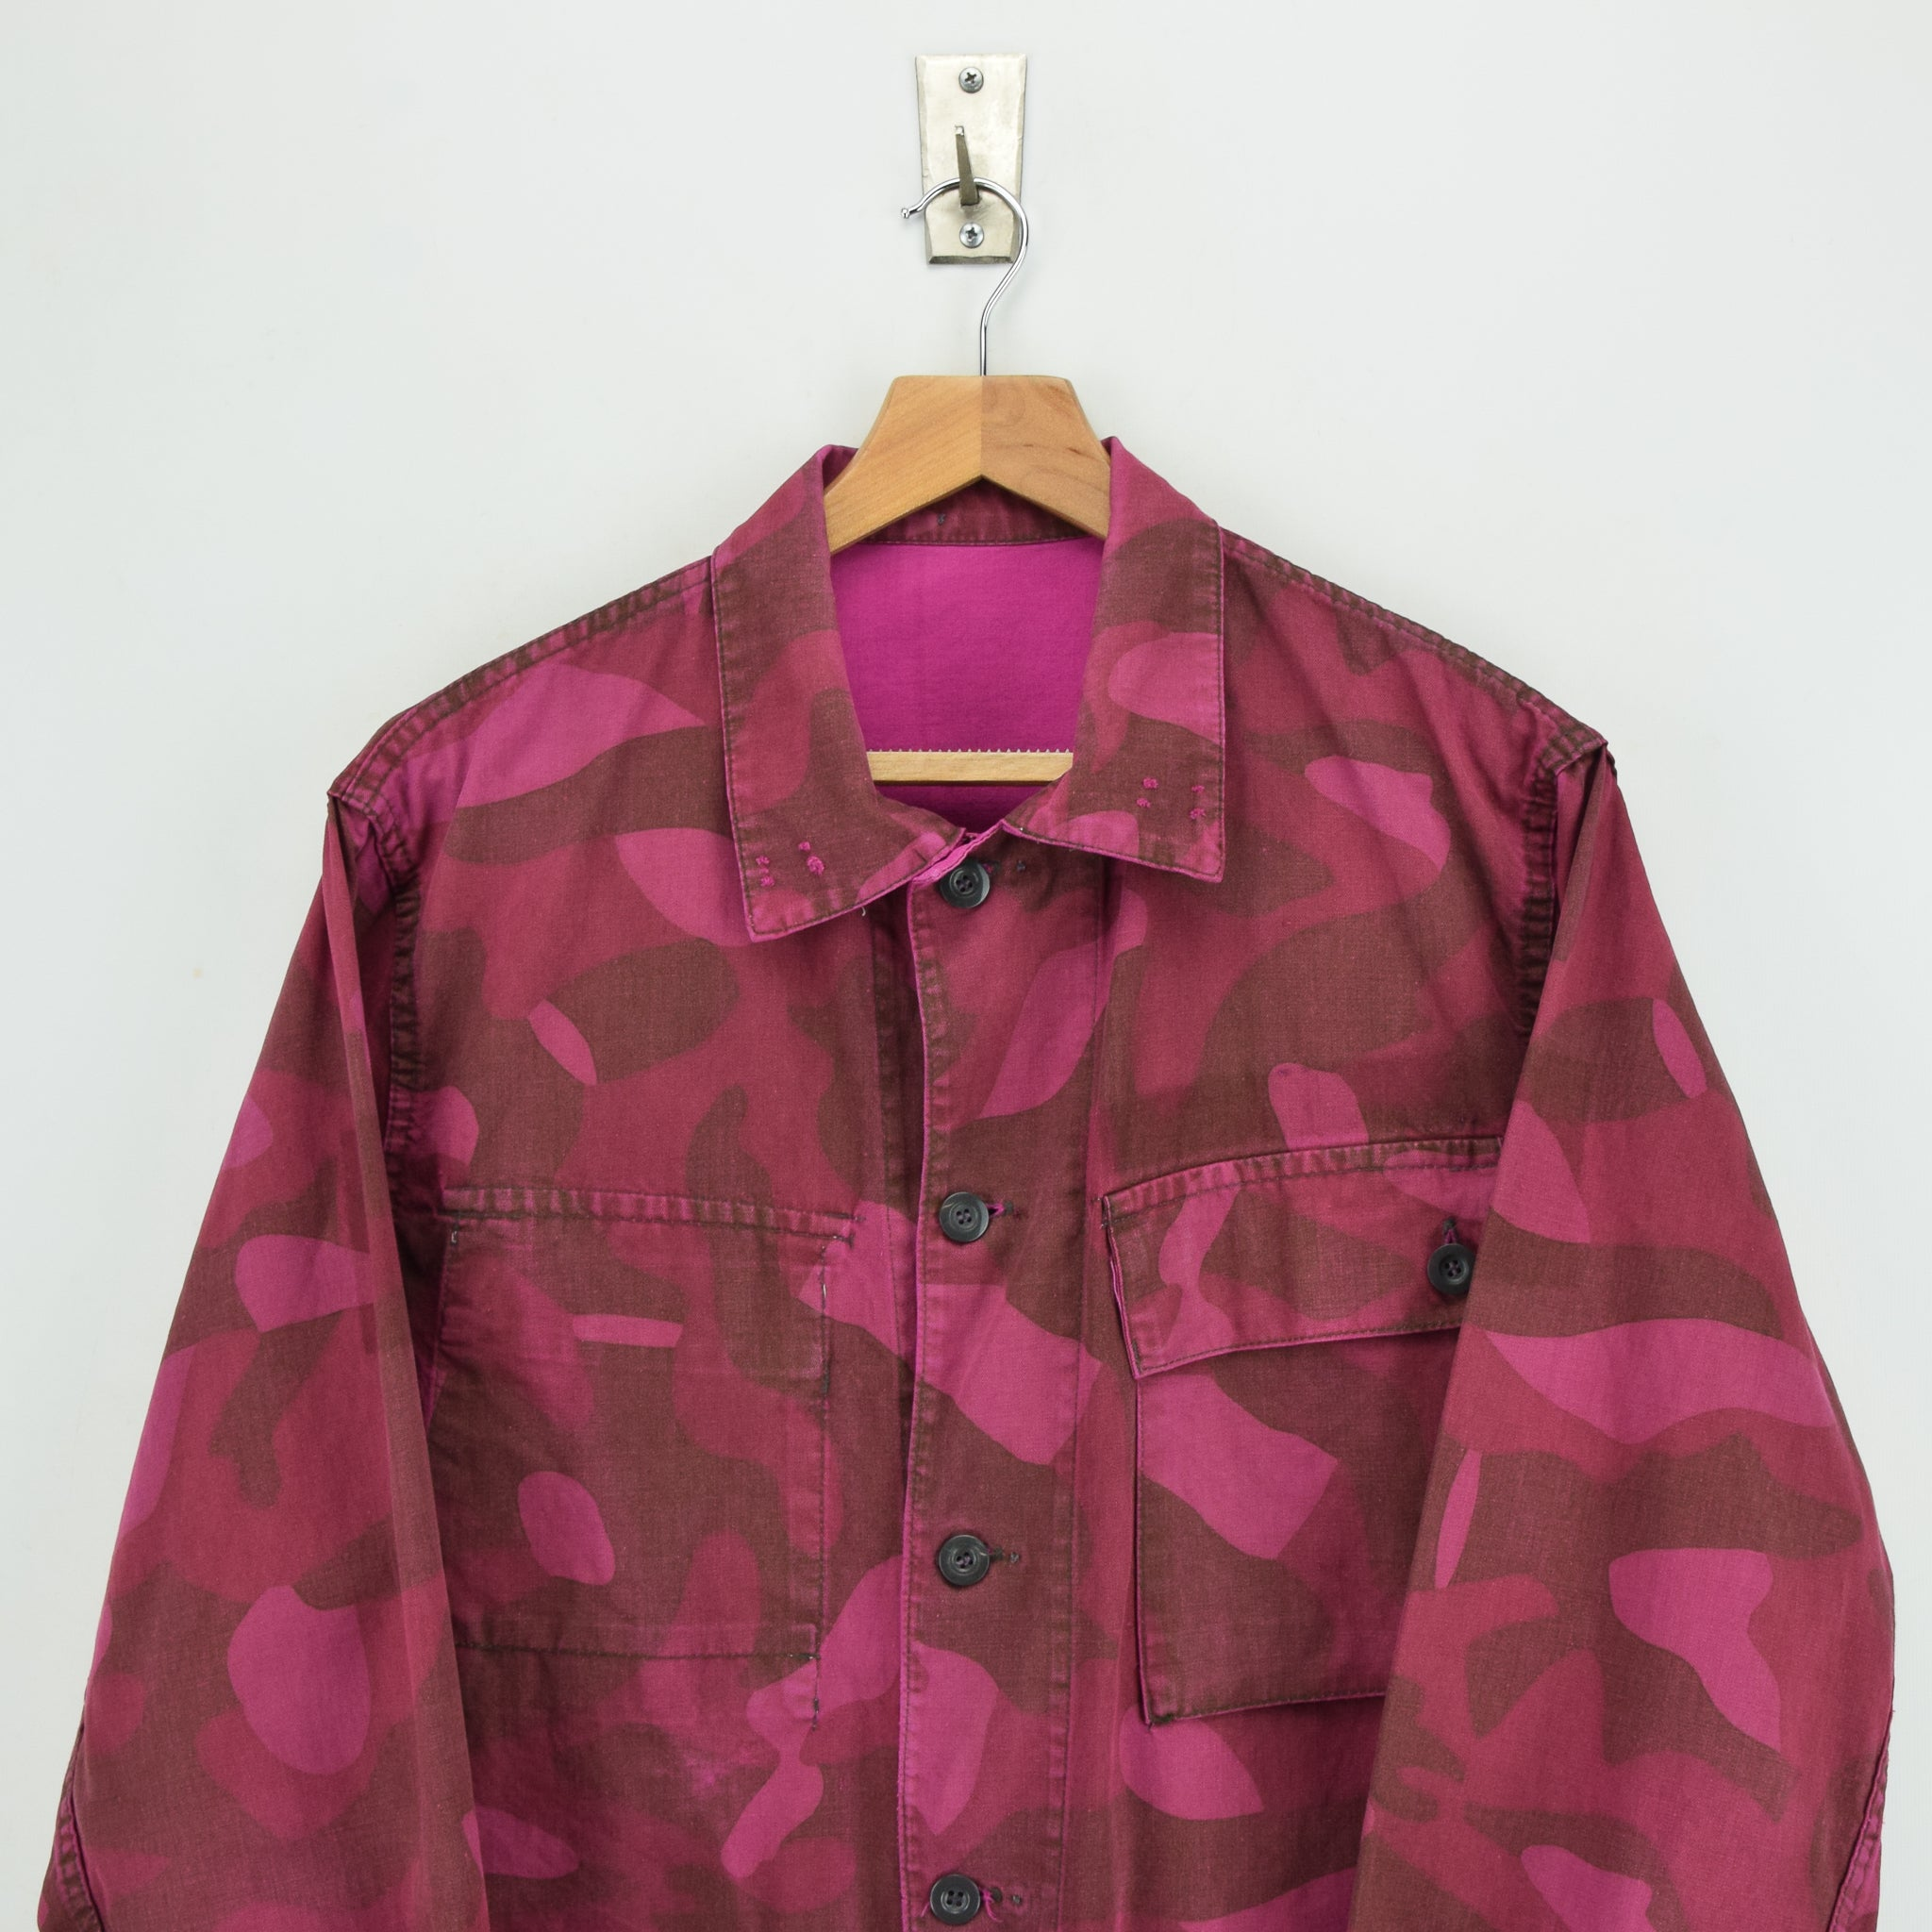 Vintage 70s Military Finnish Army Pink Overdyed Camo Mountain Field Jacket M chest